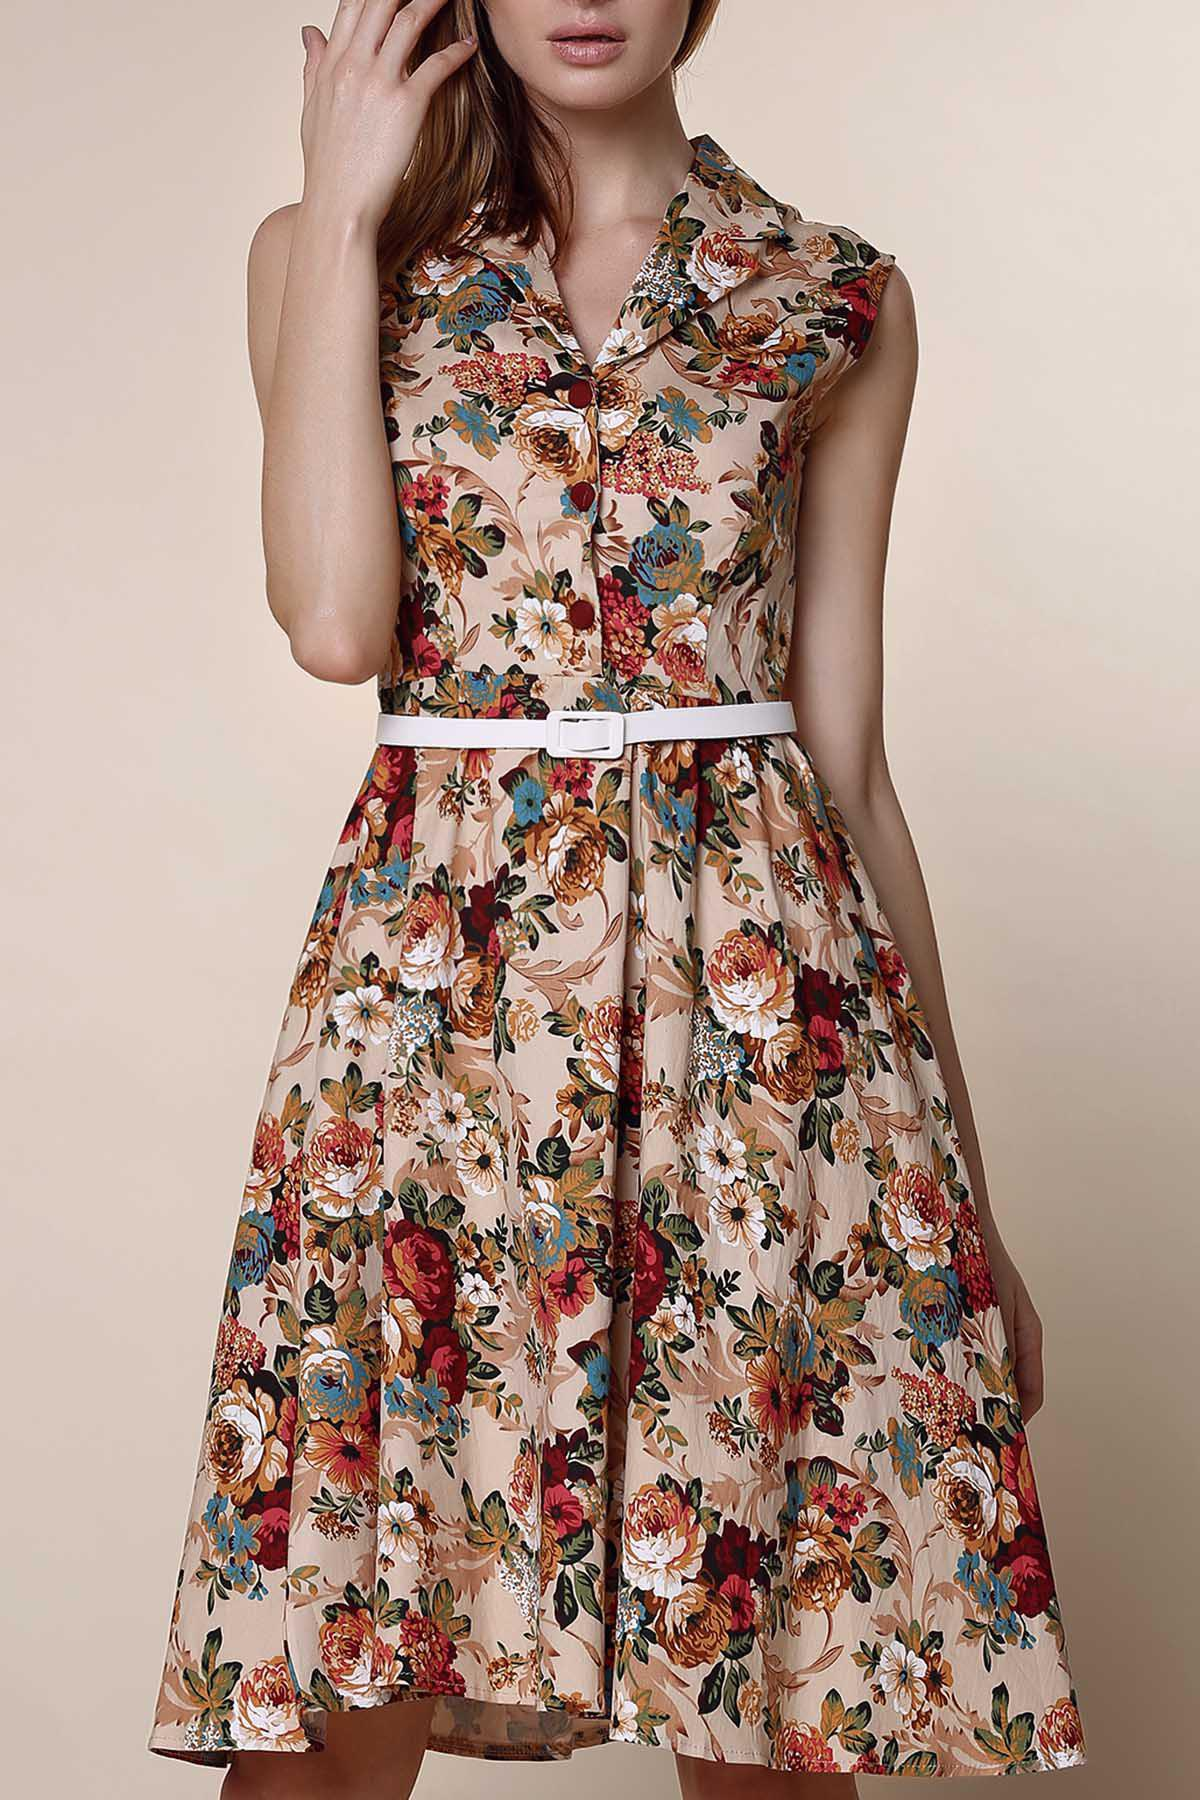 Retro Style Turn-Down Collar Sleeveless Floral Print Women's Ball Gown Dress - APRICOT S